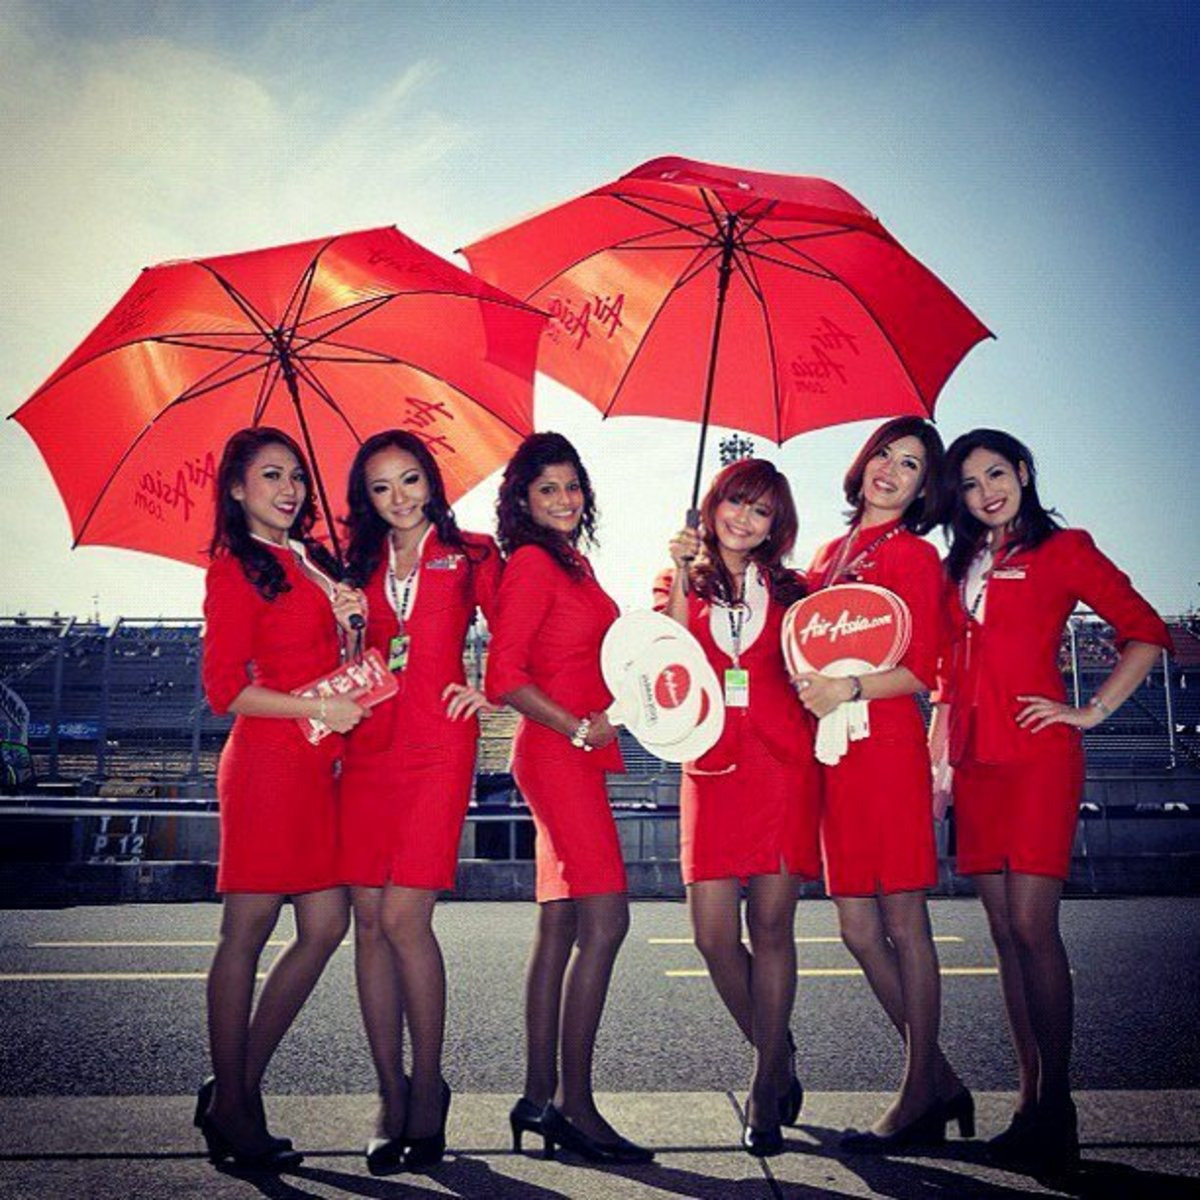 Air Asia flight attendants in their striking red colored uniforms